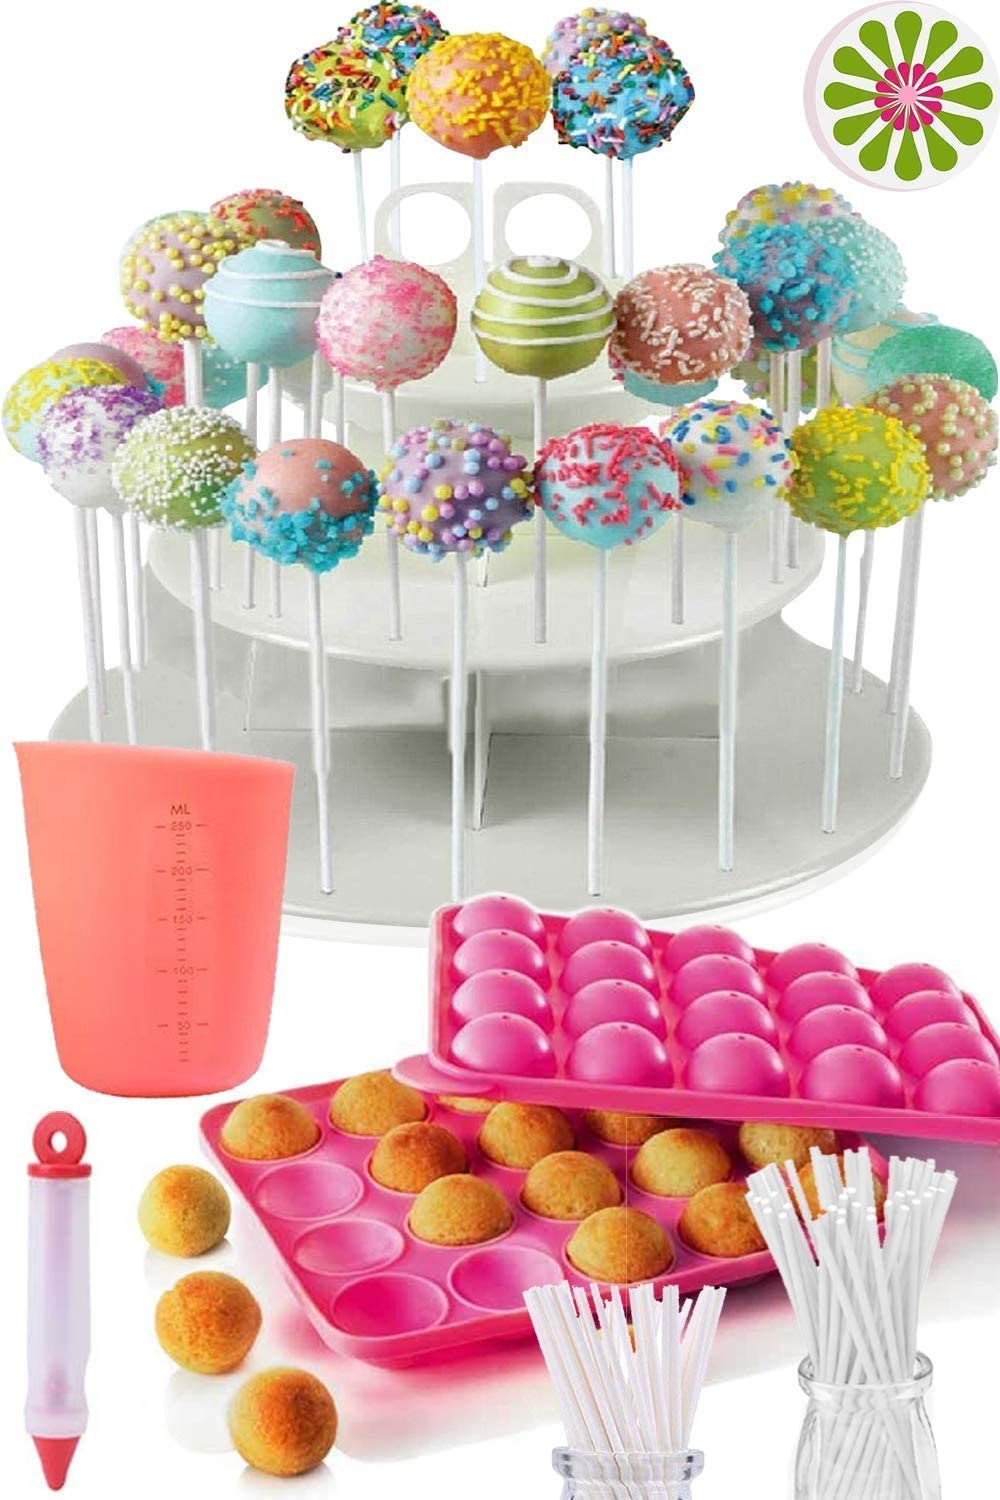 Cakes of Eden Complete Cake Pop Maker Kit